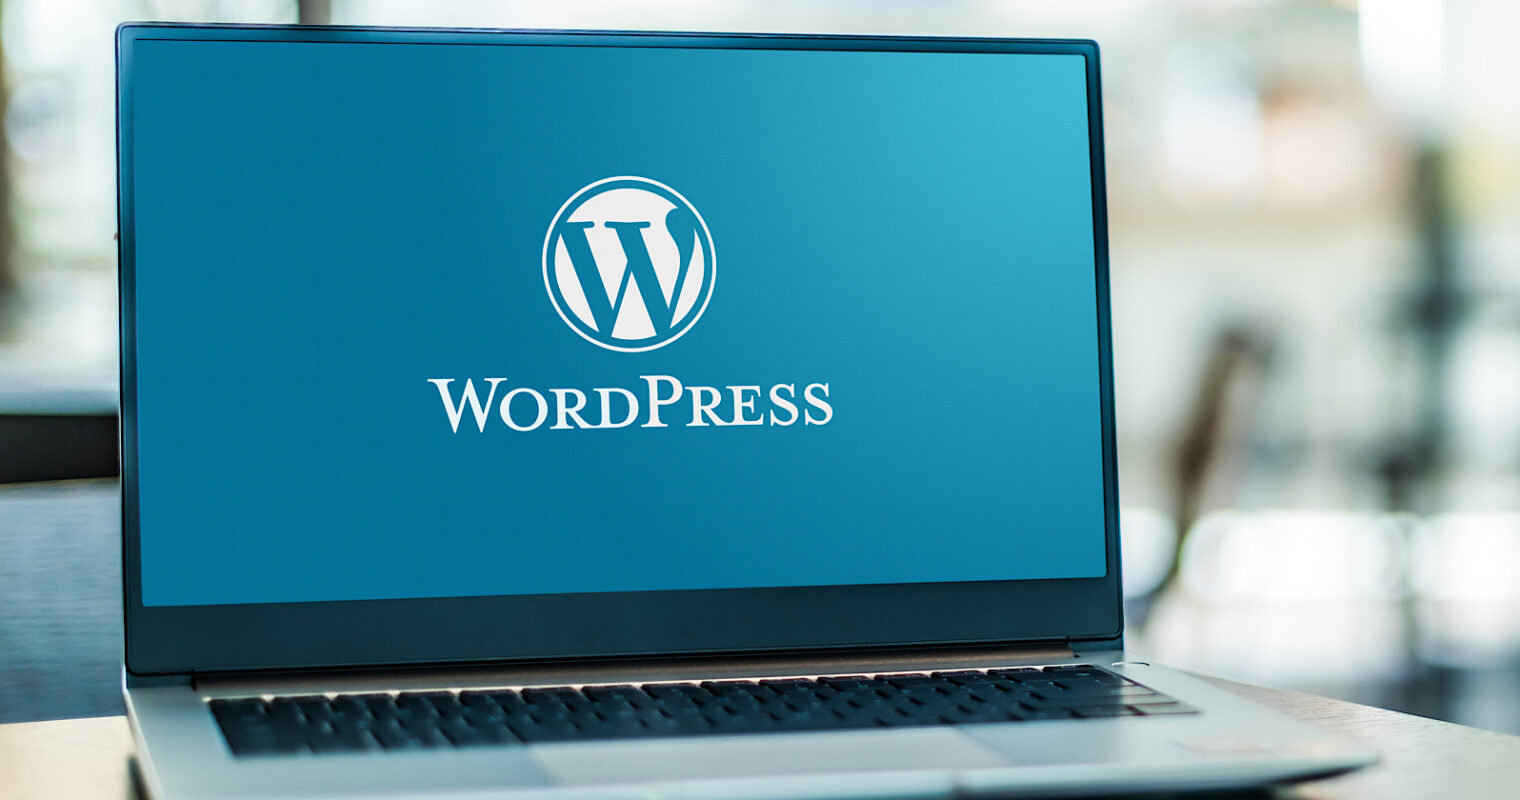 WordPress 5.7 Launches With One-Click HTTP to HTTPS Conversion